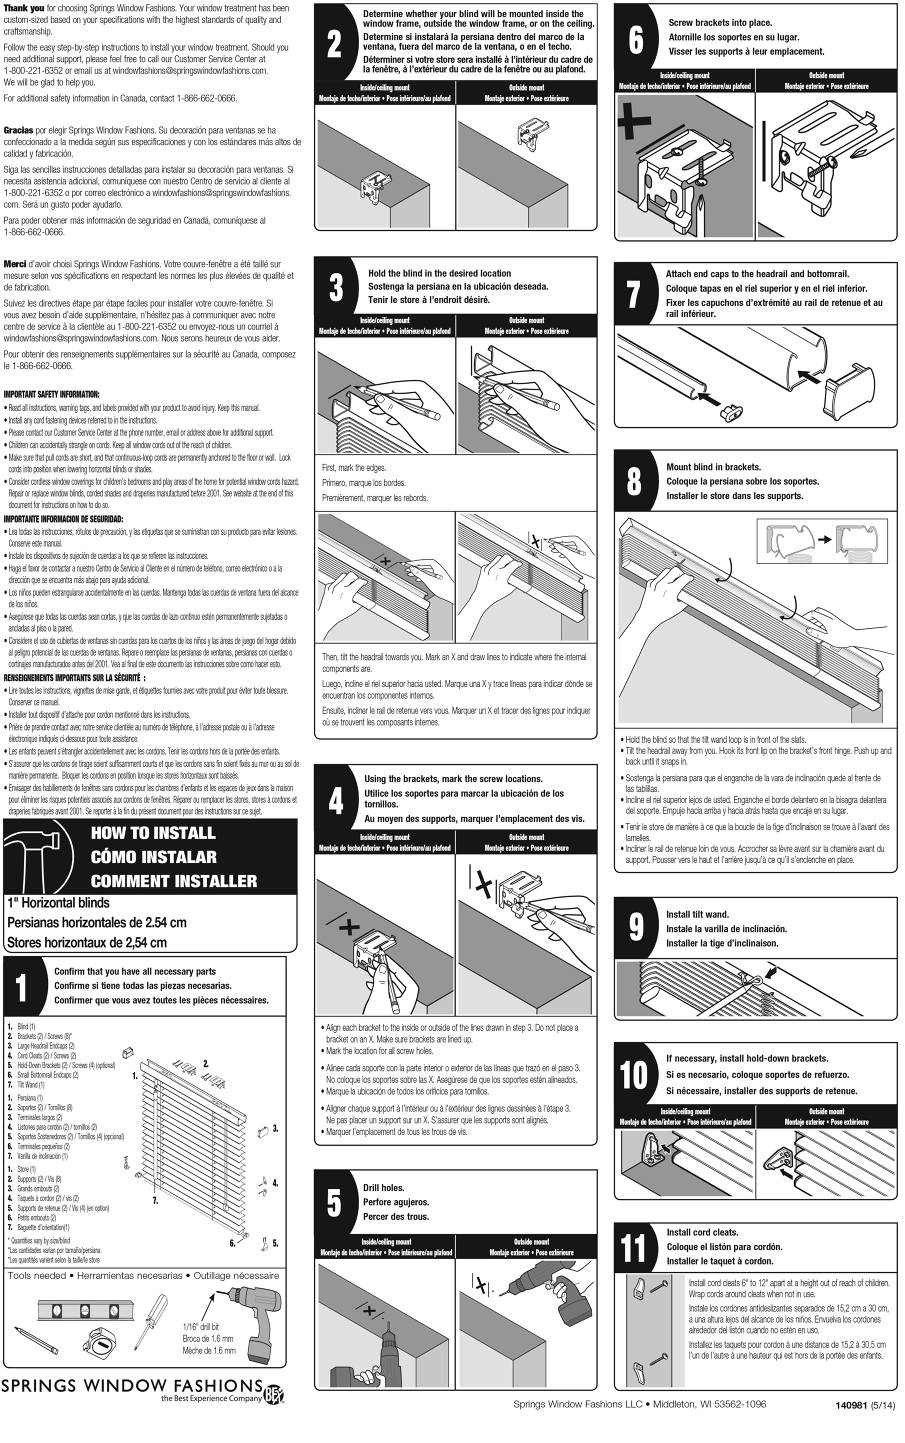 Bali Blinds Instruction Sheet